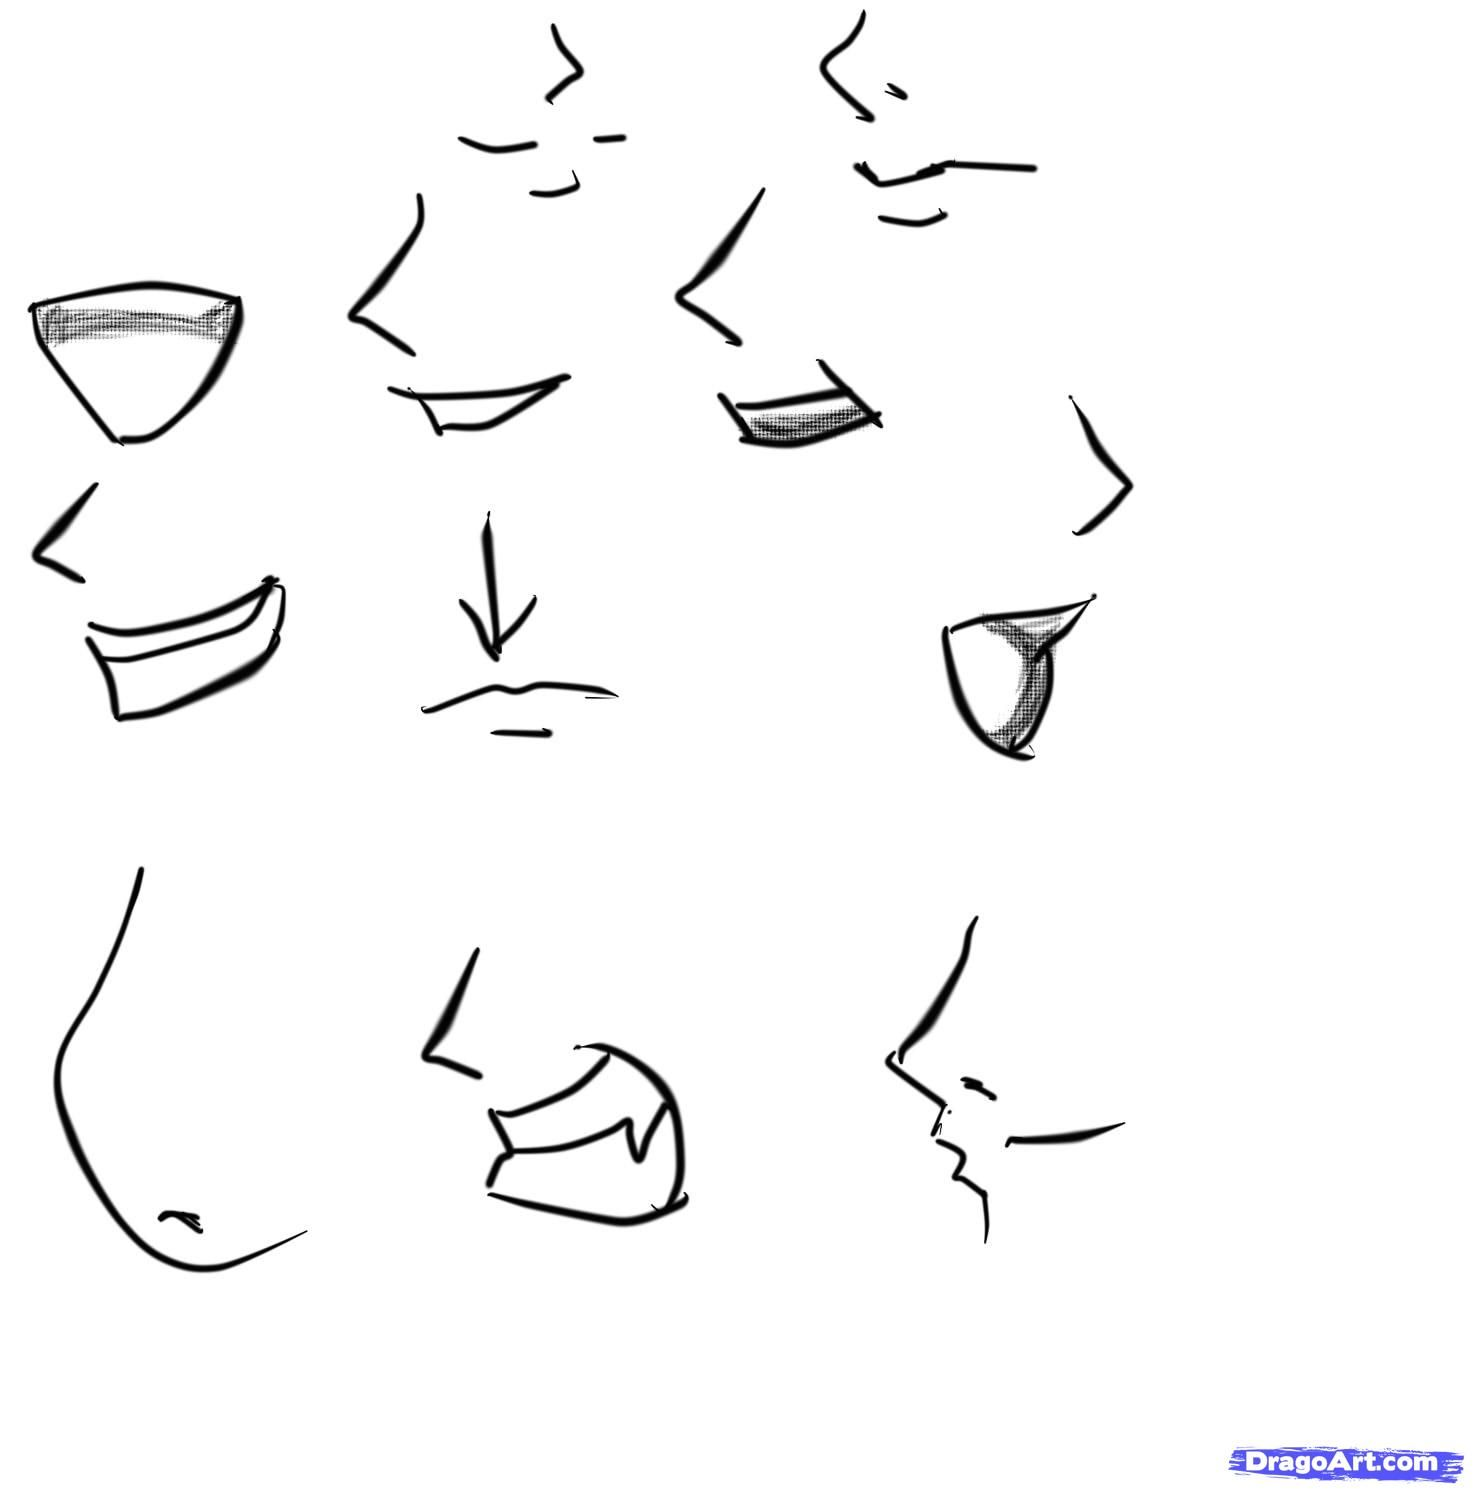 How To Draw Faces For Kids How To Draw Faces In Pencil,  Drawing Lessons   Pinterest  Kid, Human Anatomy And How To Draw